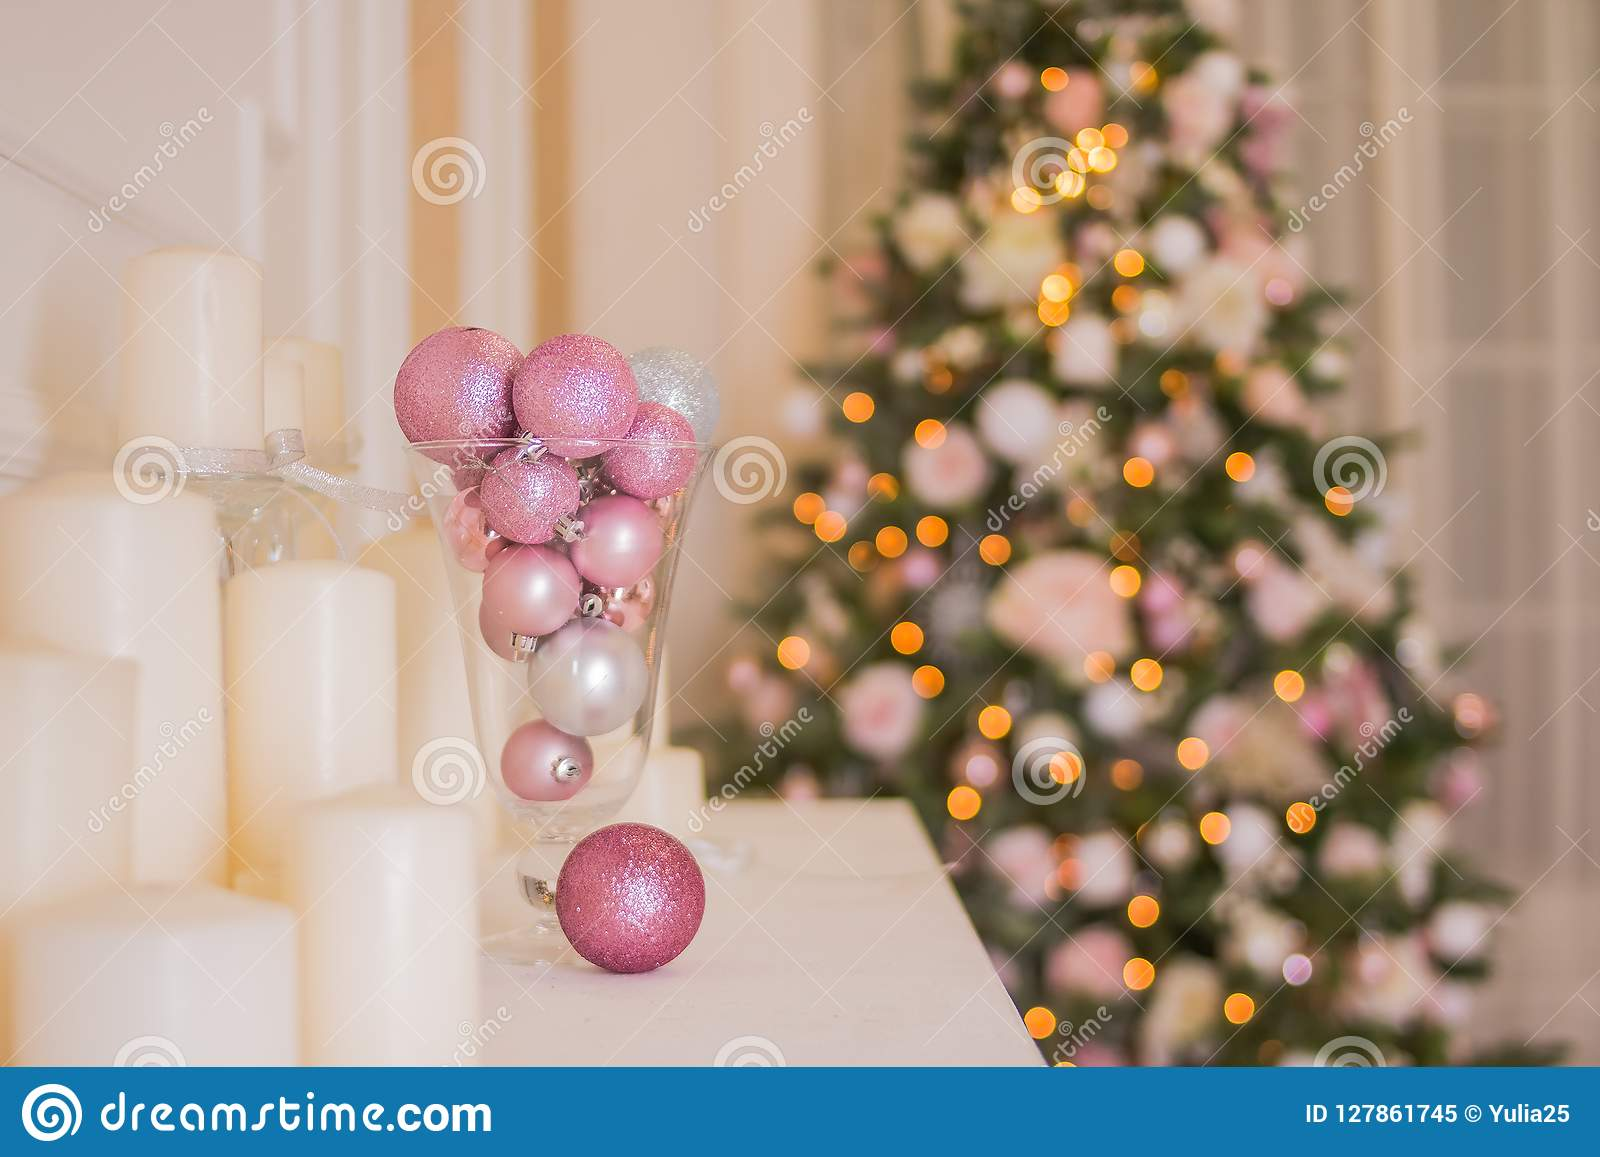 Christmas Decoration Indoors.Christmas Tree Interior Xmas Fireplace In Pink Decorated